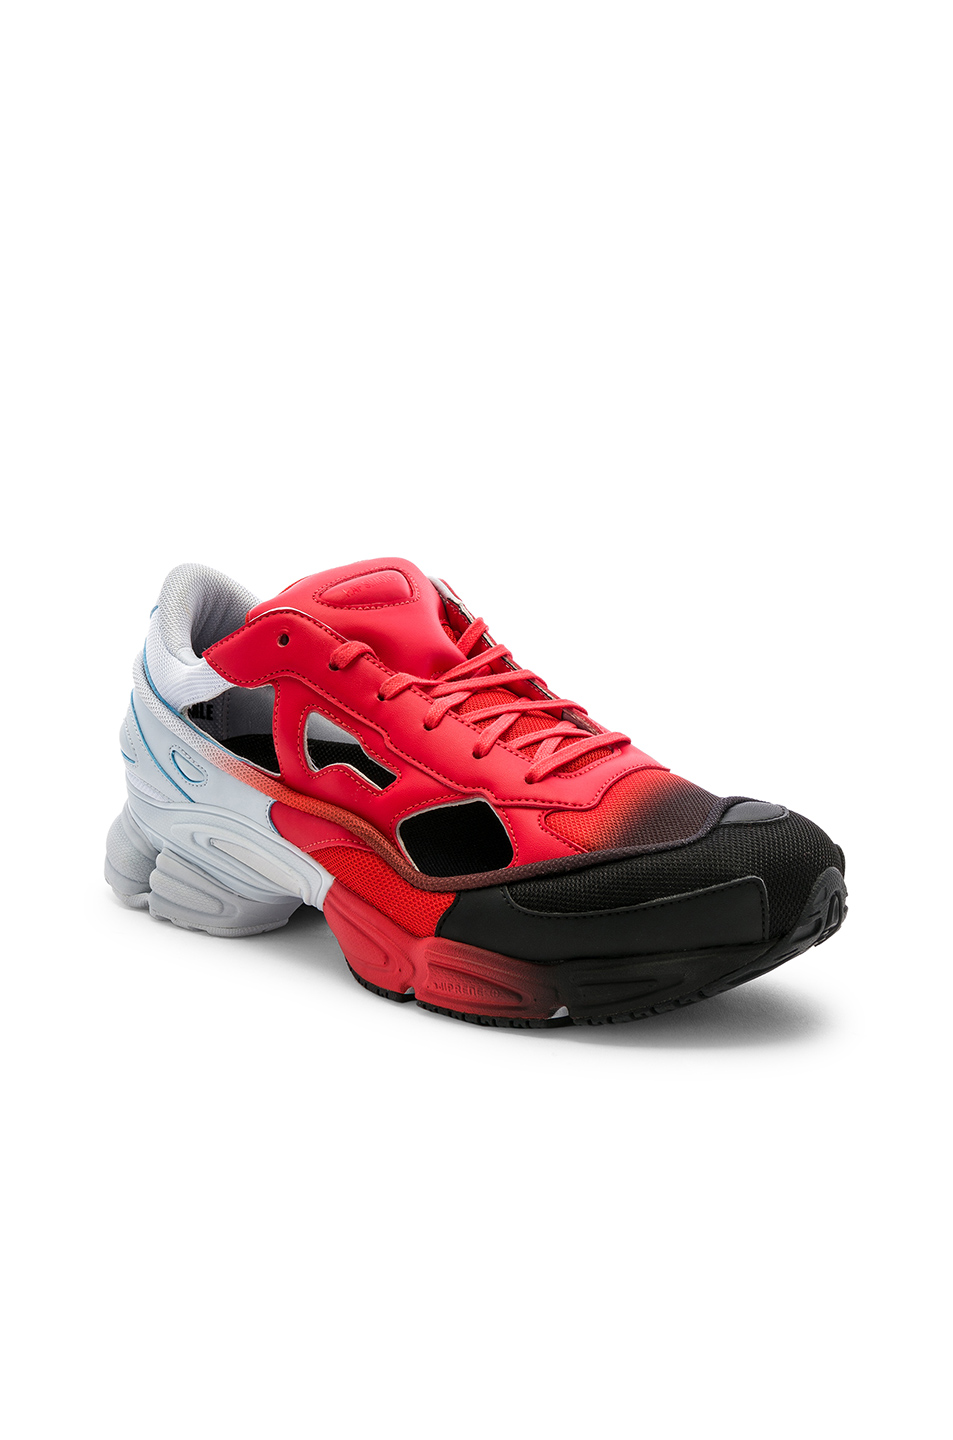 2f14ba7a9 ADIDAS BY RAF SIMONS. Adidas By Raf Simons Replicant Ozweego Sneaker In Red  ...